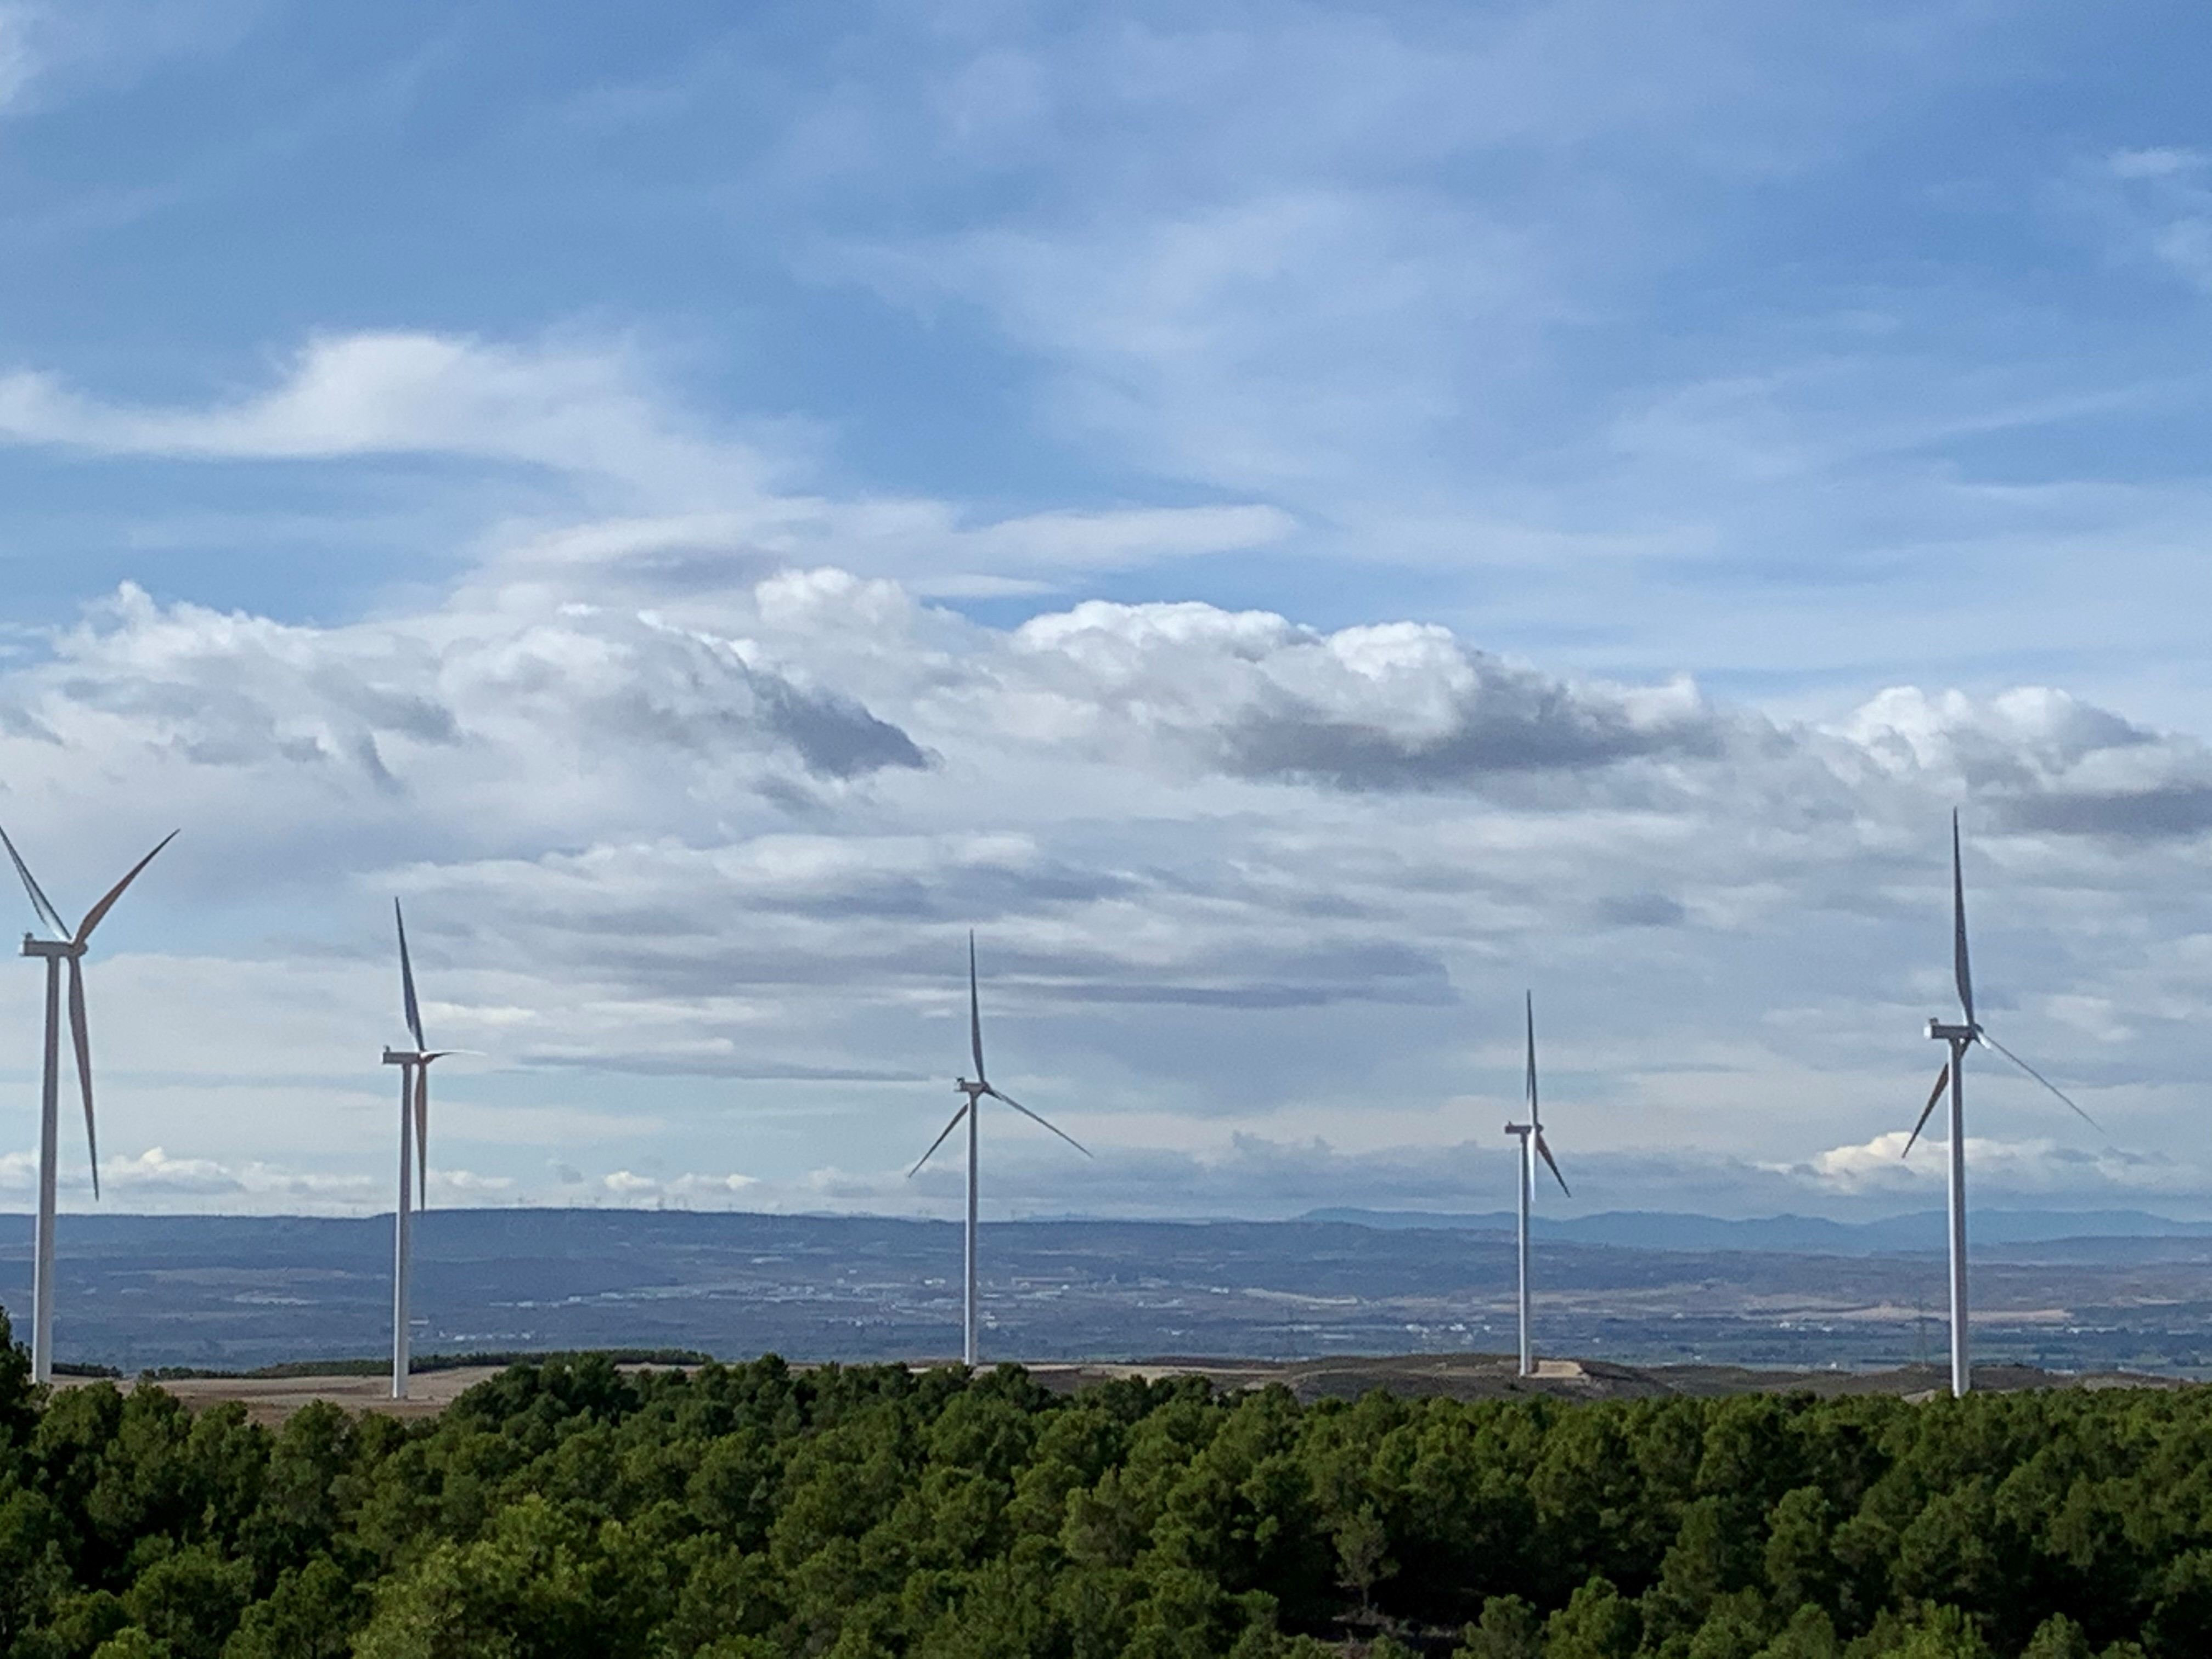 San Aguilón wind farm in Zaragoza